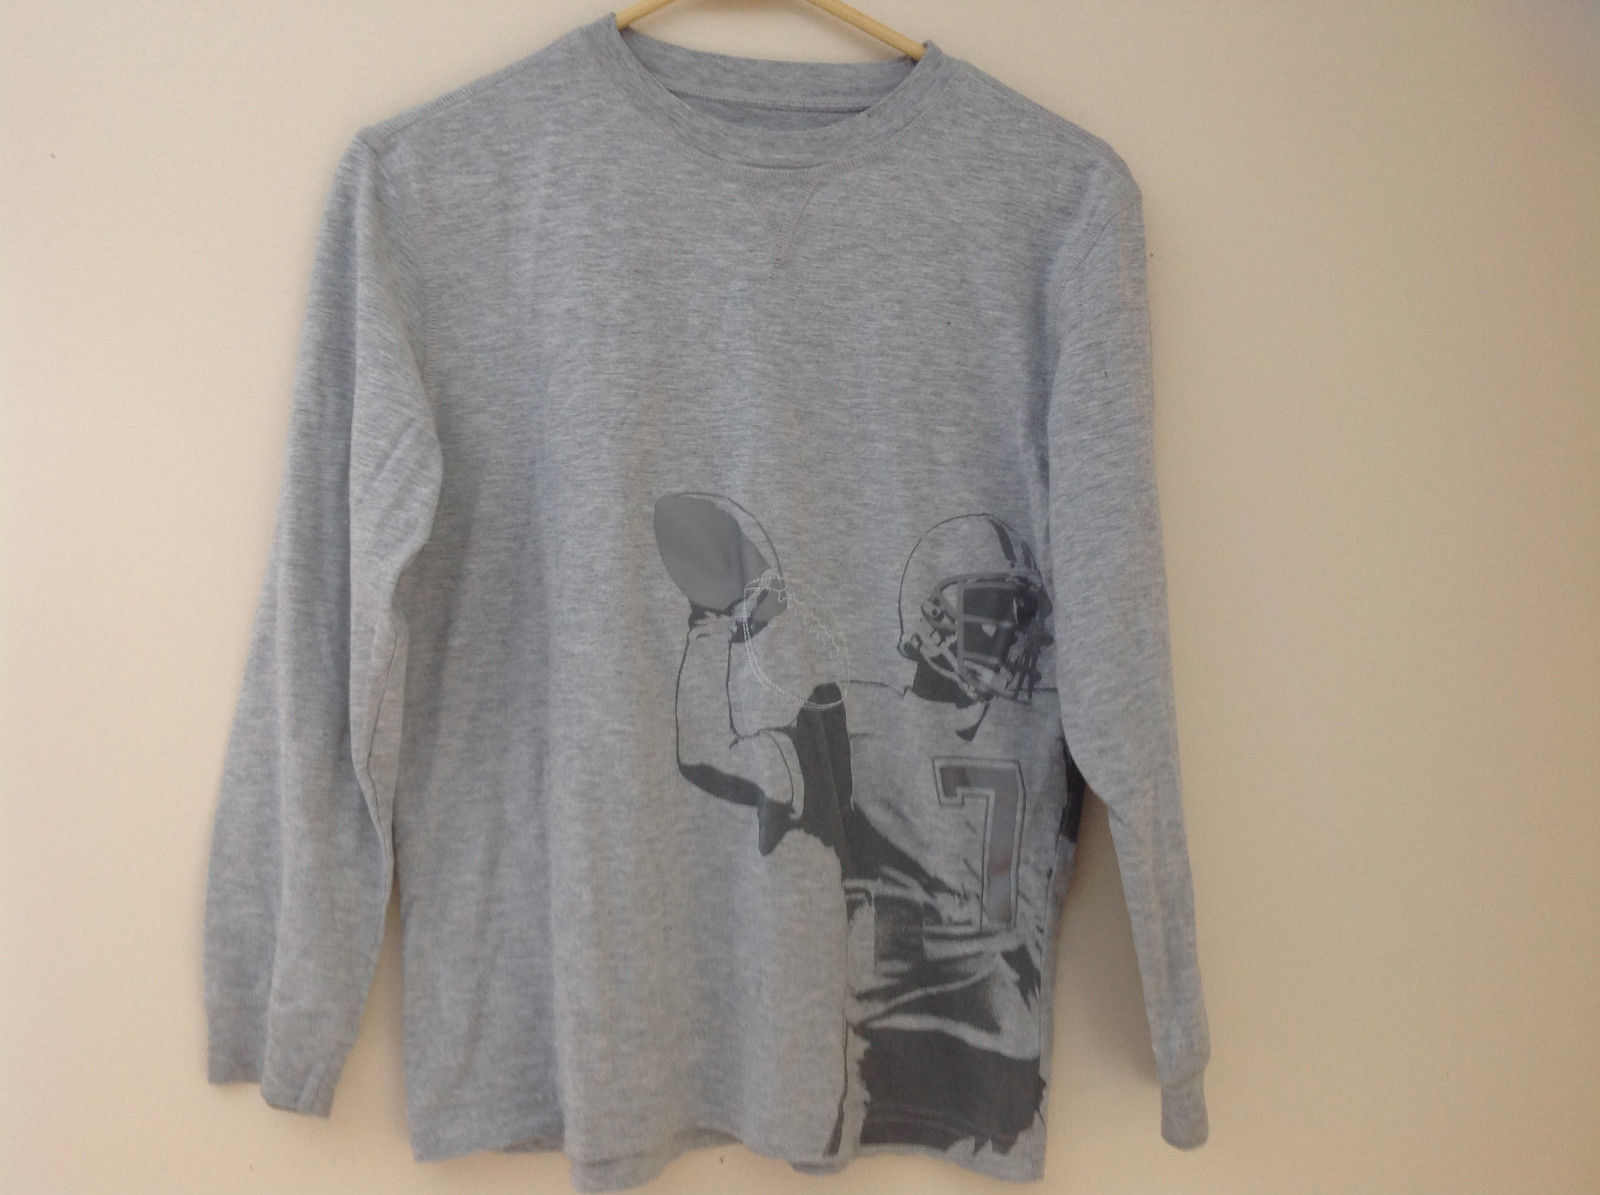 Old Navy Gray Long Sleeve Football Player Graphic Shirt Size Large 10 to 12